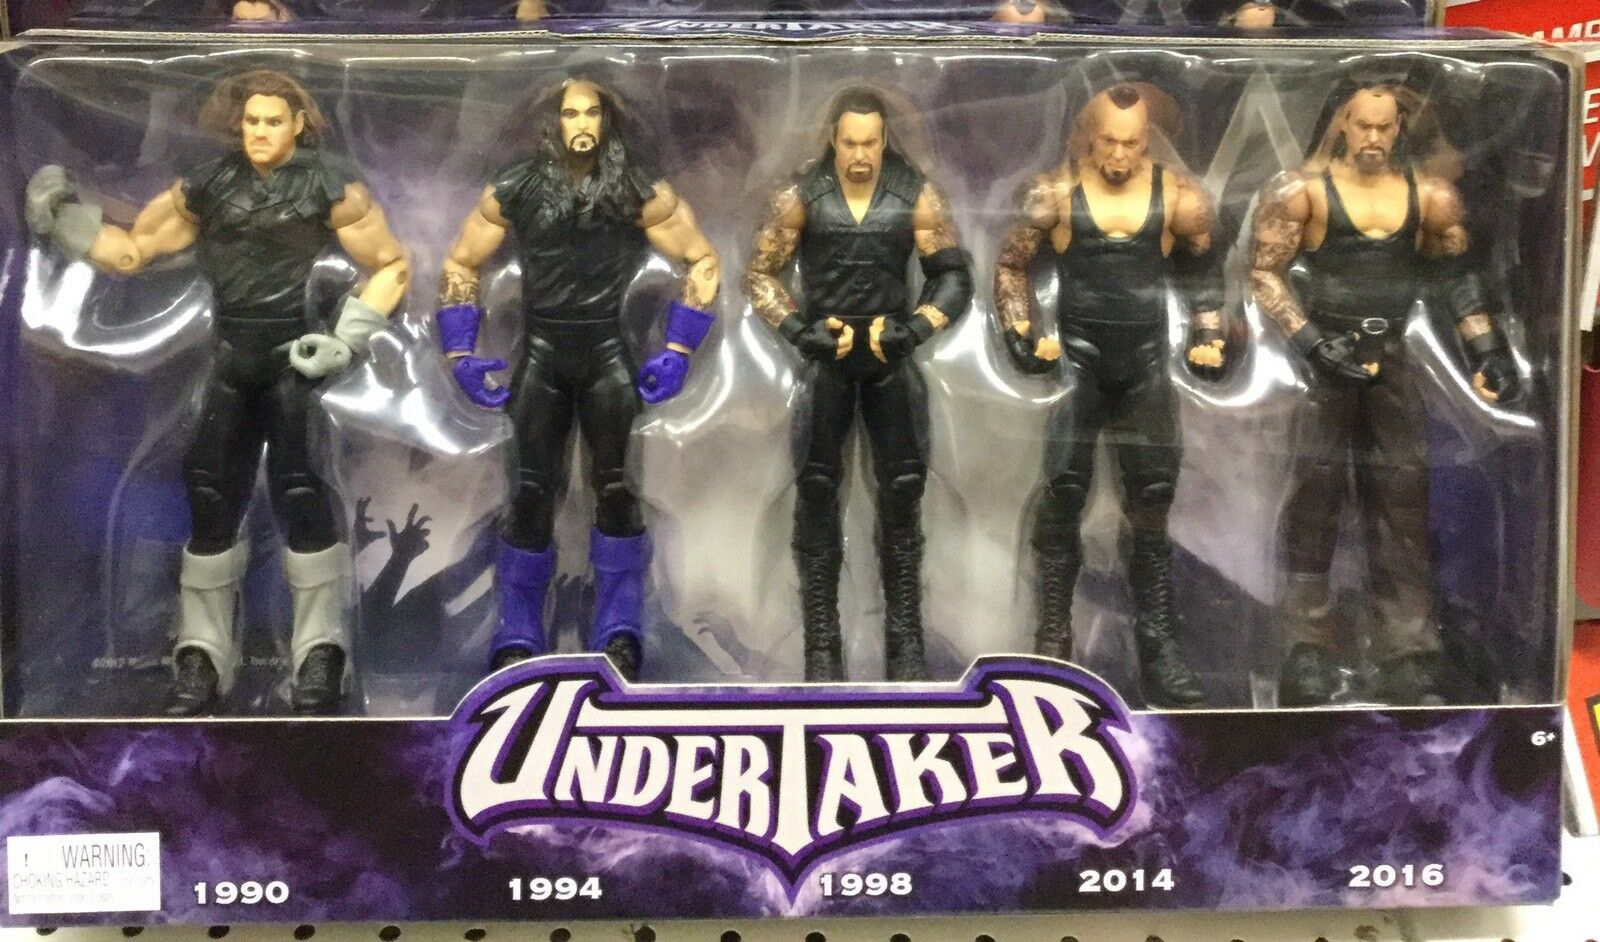 WWE UNDERTAKER Set Of 5 Action Figures. Years Of The Deadman    Brand New.